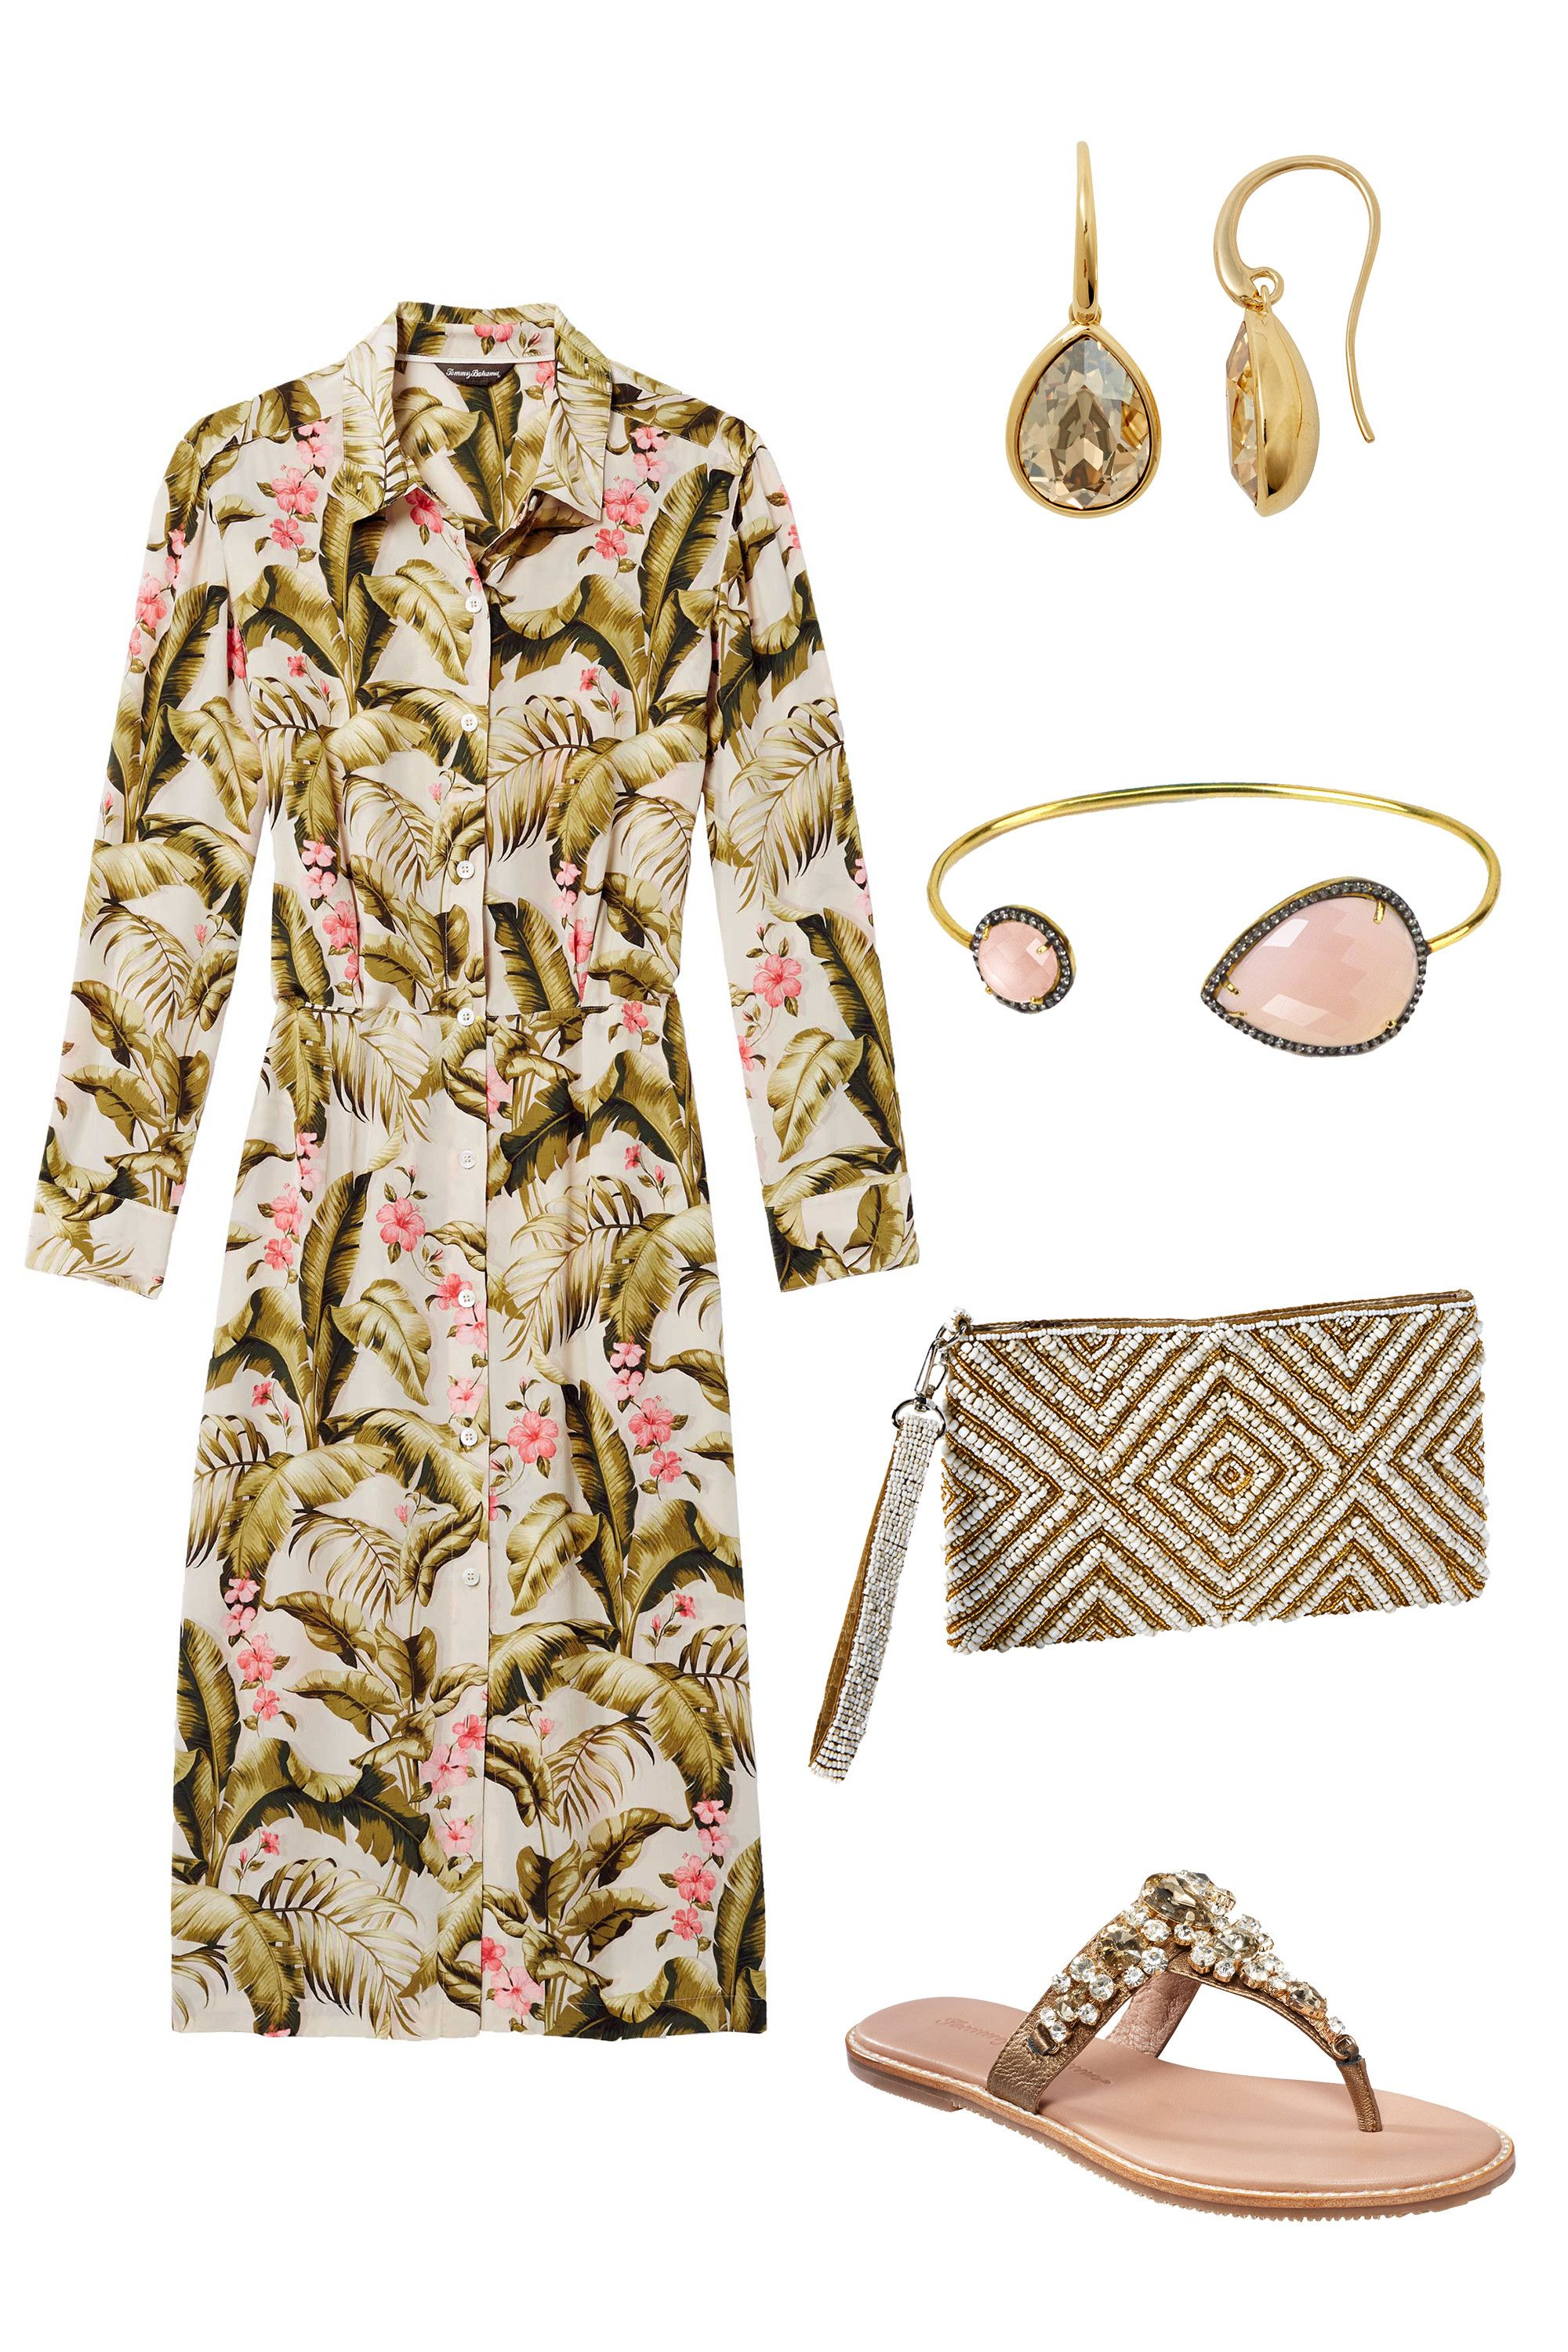 """<p>A floral shirtdress paired with chic thong sandals and delicate accessories ensures you'll celebrate the bride in style.<br></p><p><br></p><p><em><em>Tommy Bahama Beau Jardin Silk Shirt Dress, <a href=""""http://www.tommybahama.com/en/Beau-Jardin-Silk-Shirt-Dress/p/TW613255-4015"""" target=""""_blank"""">$298</a>&#x3B; Gold Teardrop Earrings, <a href=""""http://www.tommybahama.com/en/Gold-Teardrop-Earrings/p/THW74566-11346"""" target=""""_blank"""">$48</a>&#x3B; Pink Chalcedony Double-Stone Cuff, <a href=""""http://www.tommybahama.com/en/Pink-Chalcedony-Double-Stone-Cuff/p/THW74638-4987"""" target=""""_blank"""">$158</a>&#x3B; Beaded Diamond Wristlet, <a href=""""http://www.tommybahama.com/en/Beaded-Diamond-Wristlet/p/THW74492-185"""" target=""""_blank"""">$68</a>&#x3B; <em><em>Yuri Leather Sandals, <a href=""""http://www.tommybahama.com/en/Yuri-Leather-Sandals/p/TFW00209-617"""" target=""""_blank"""">$138</a></em></em></em></em></p>"""